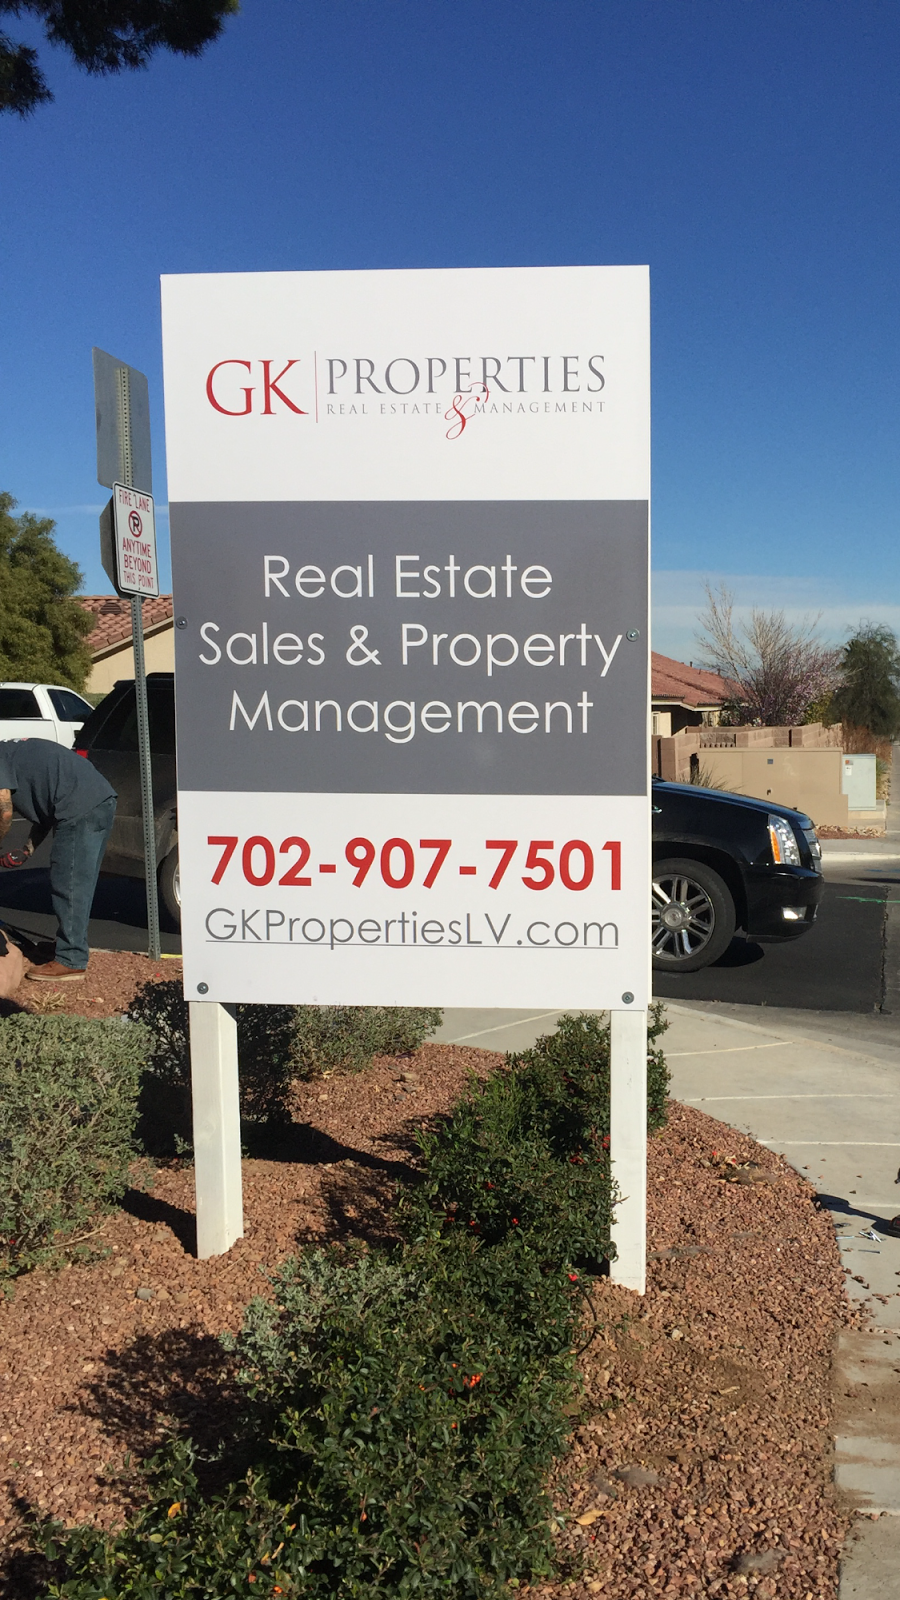 GK Properties - real estate agency  | Photo 3 of 5 | Address: 105 N Pecos Rd #120, Henderson, NV 89074, USA | Phone: (702) 907-7501